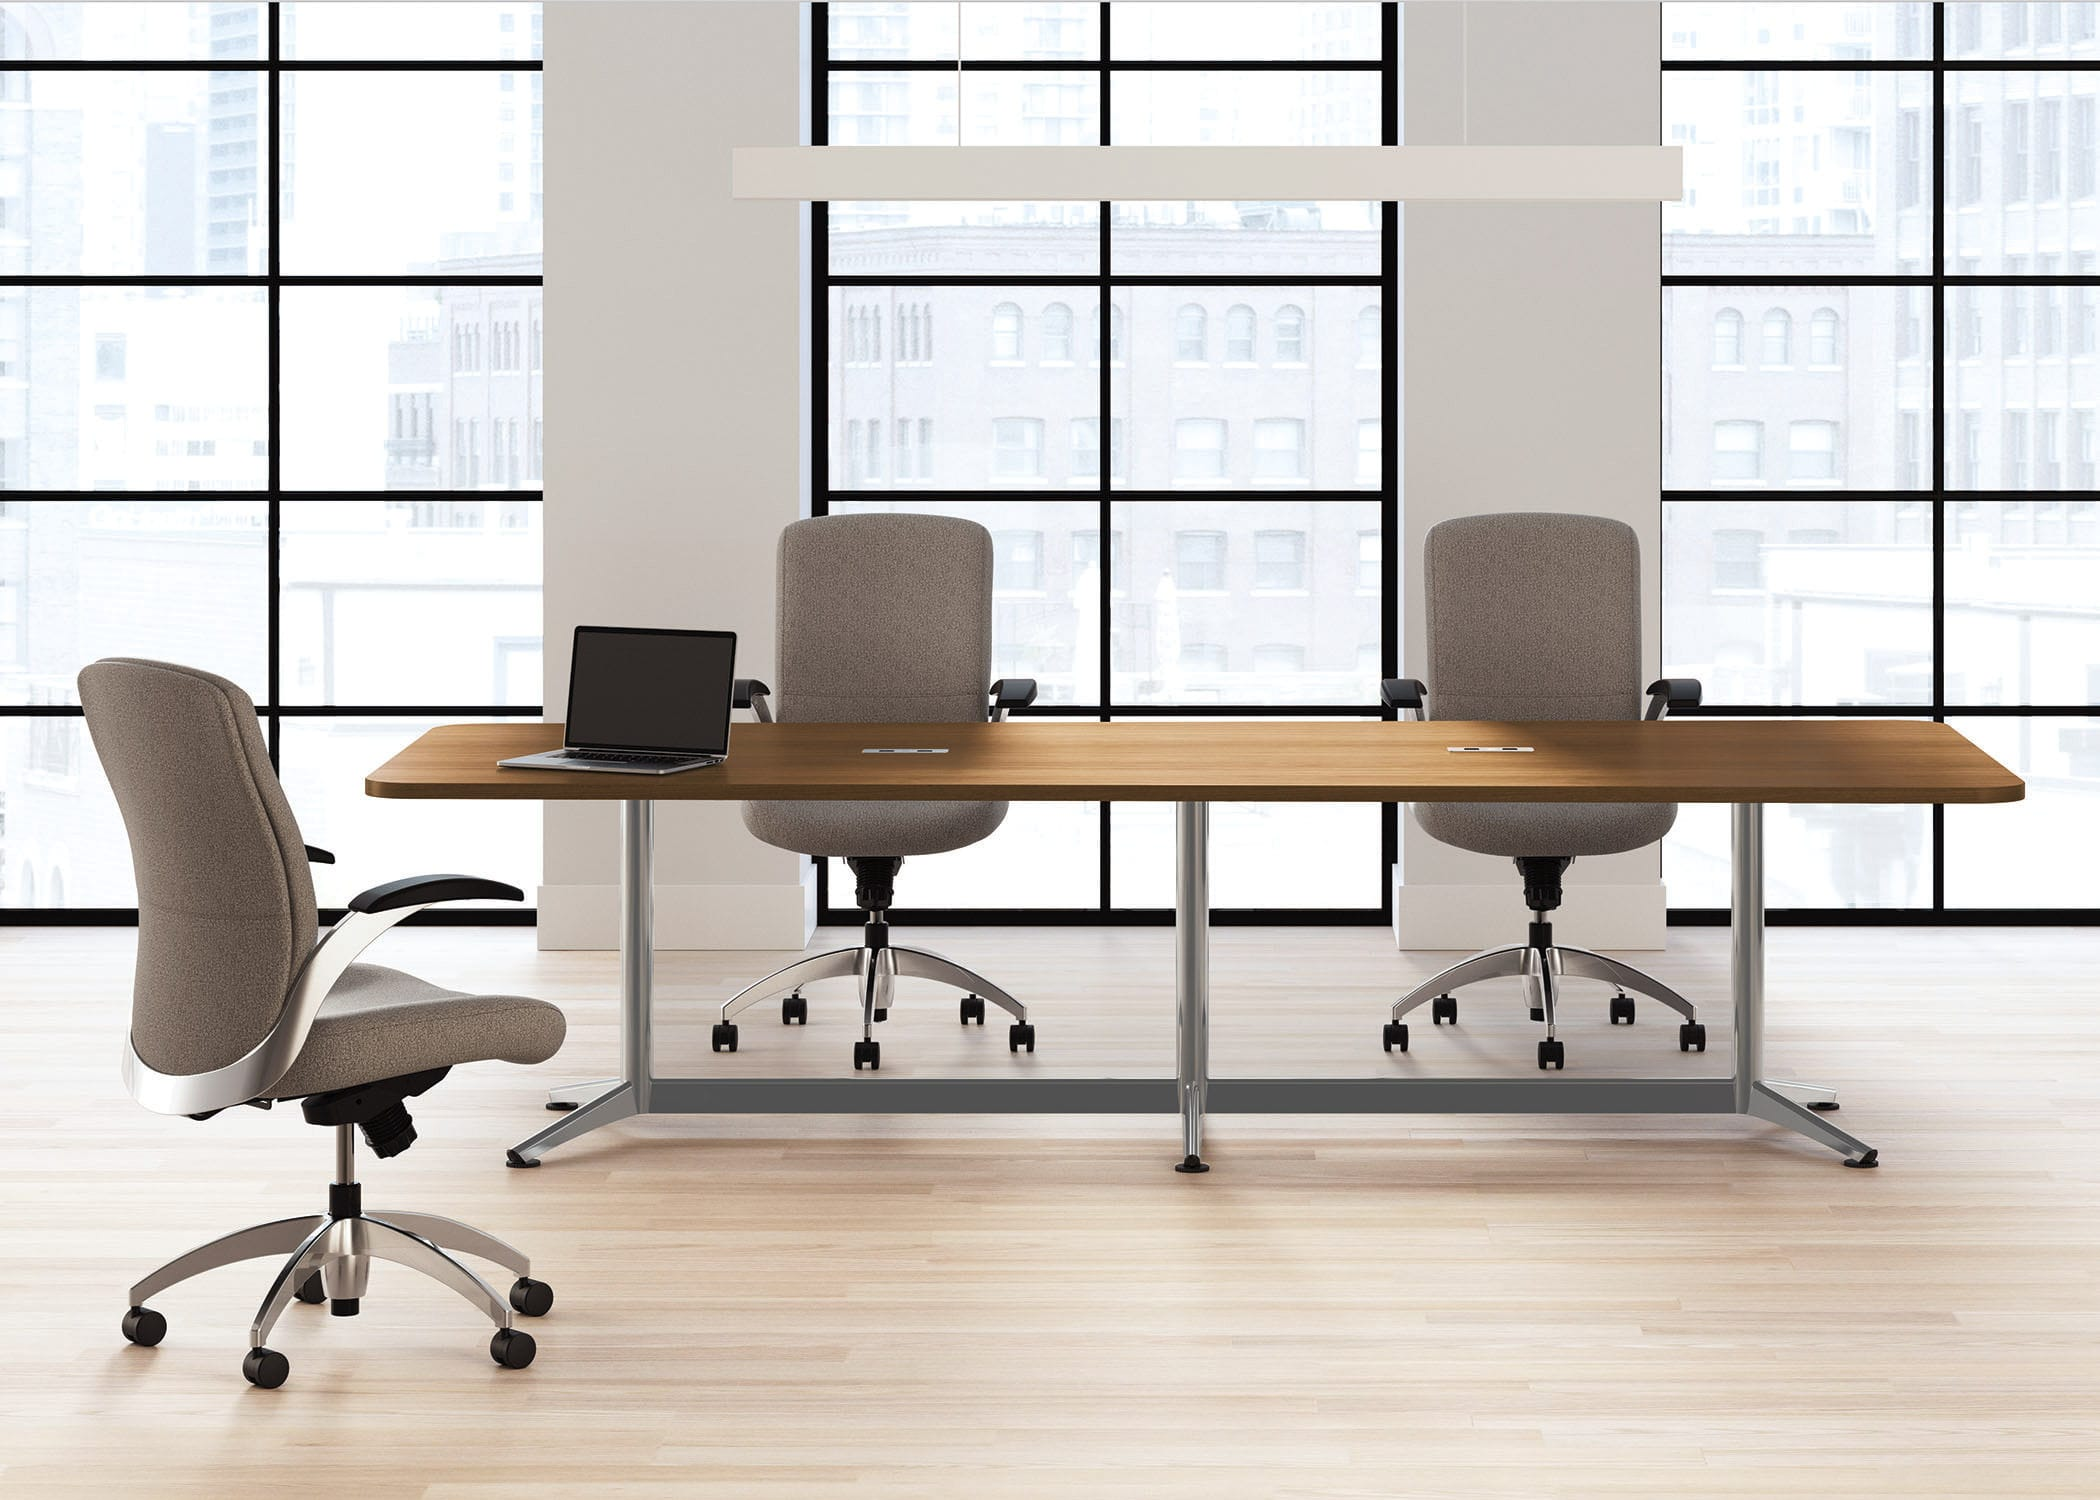 office dining table. Dining Table / For Meeting Rooms Rectangular Round - Footings Office L